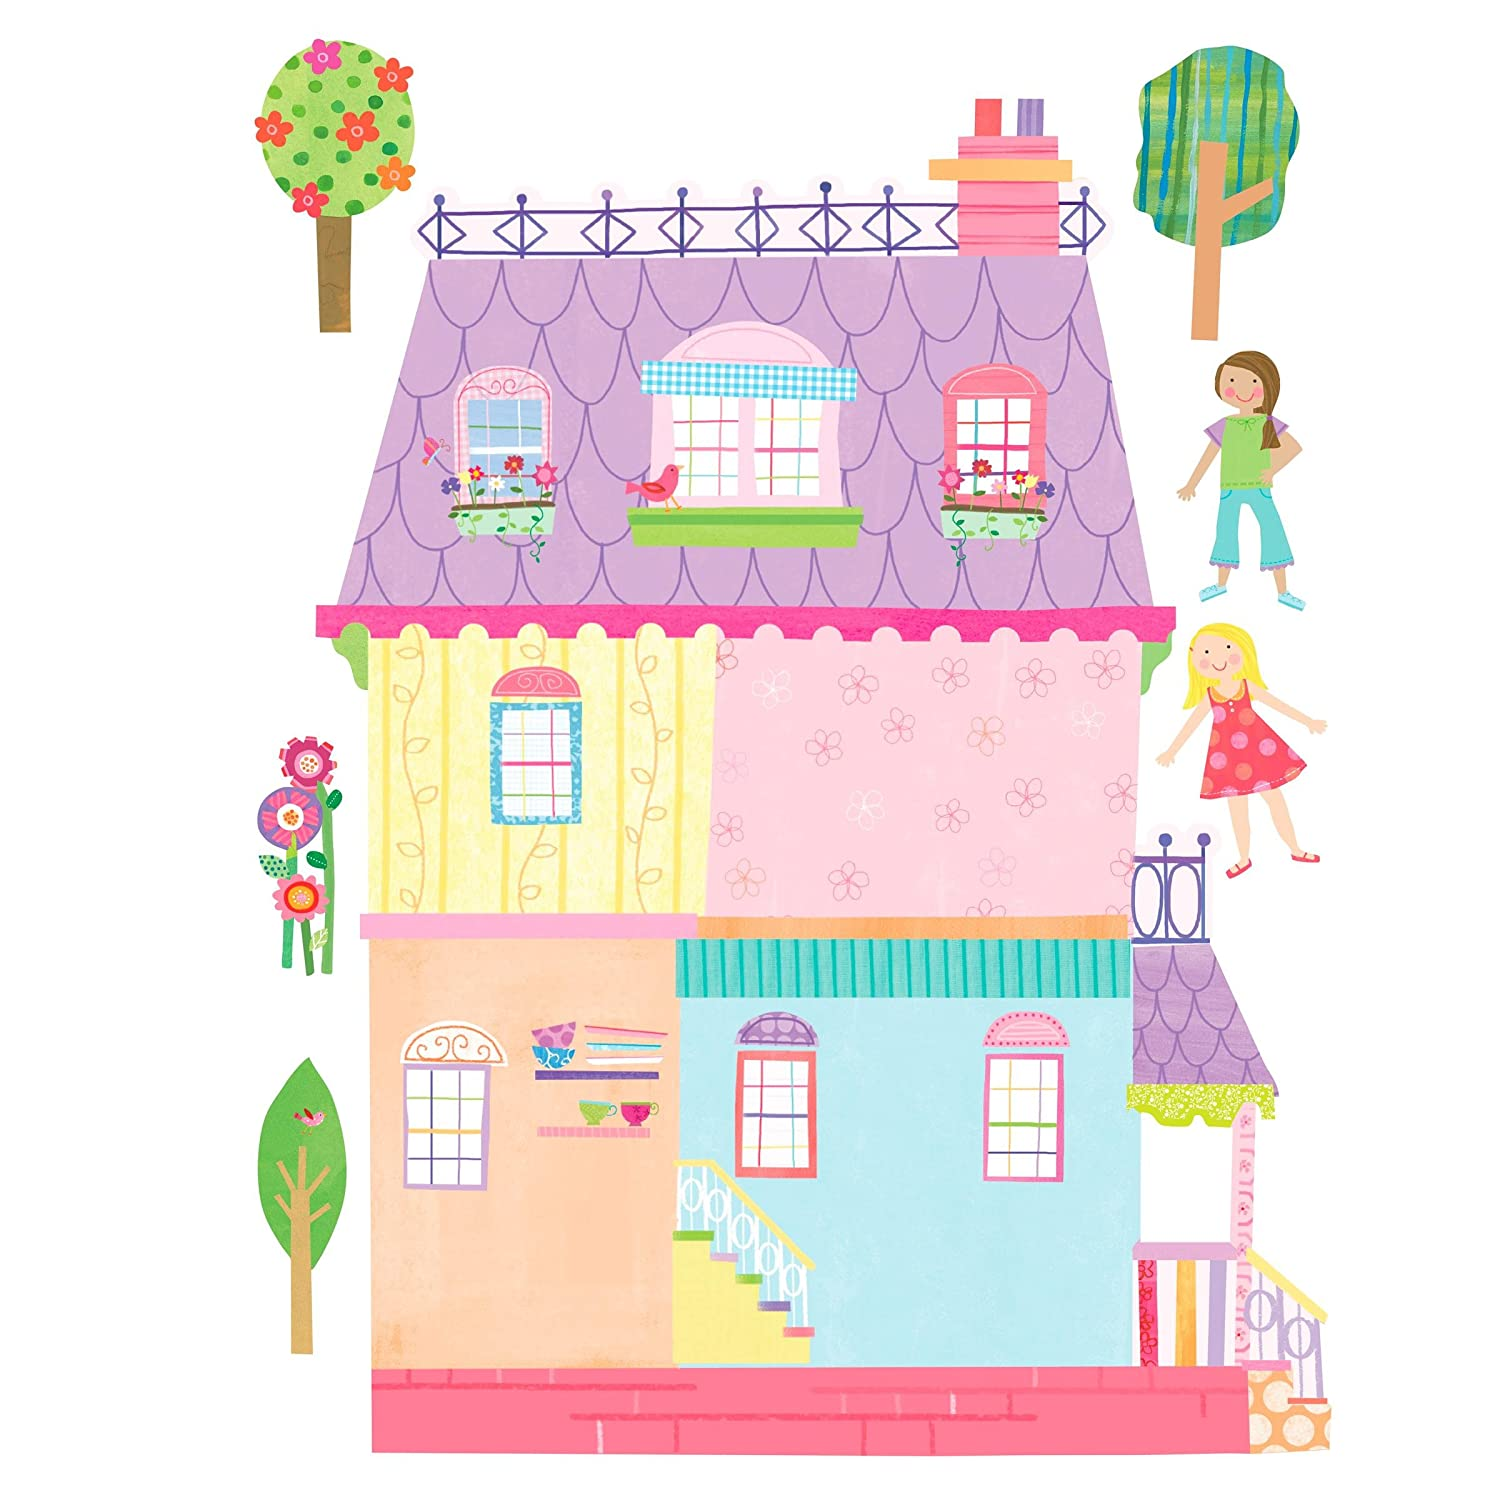 Amazon.com: Wallies Wall Decals, Play House Wall Sticker, 16-1/4 ...